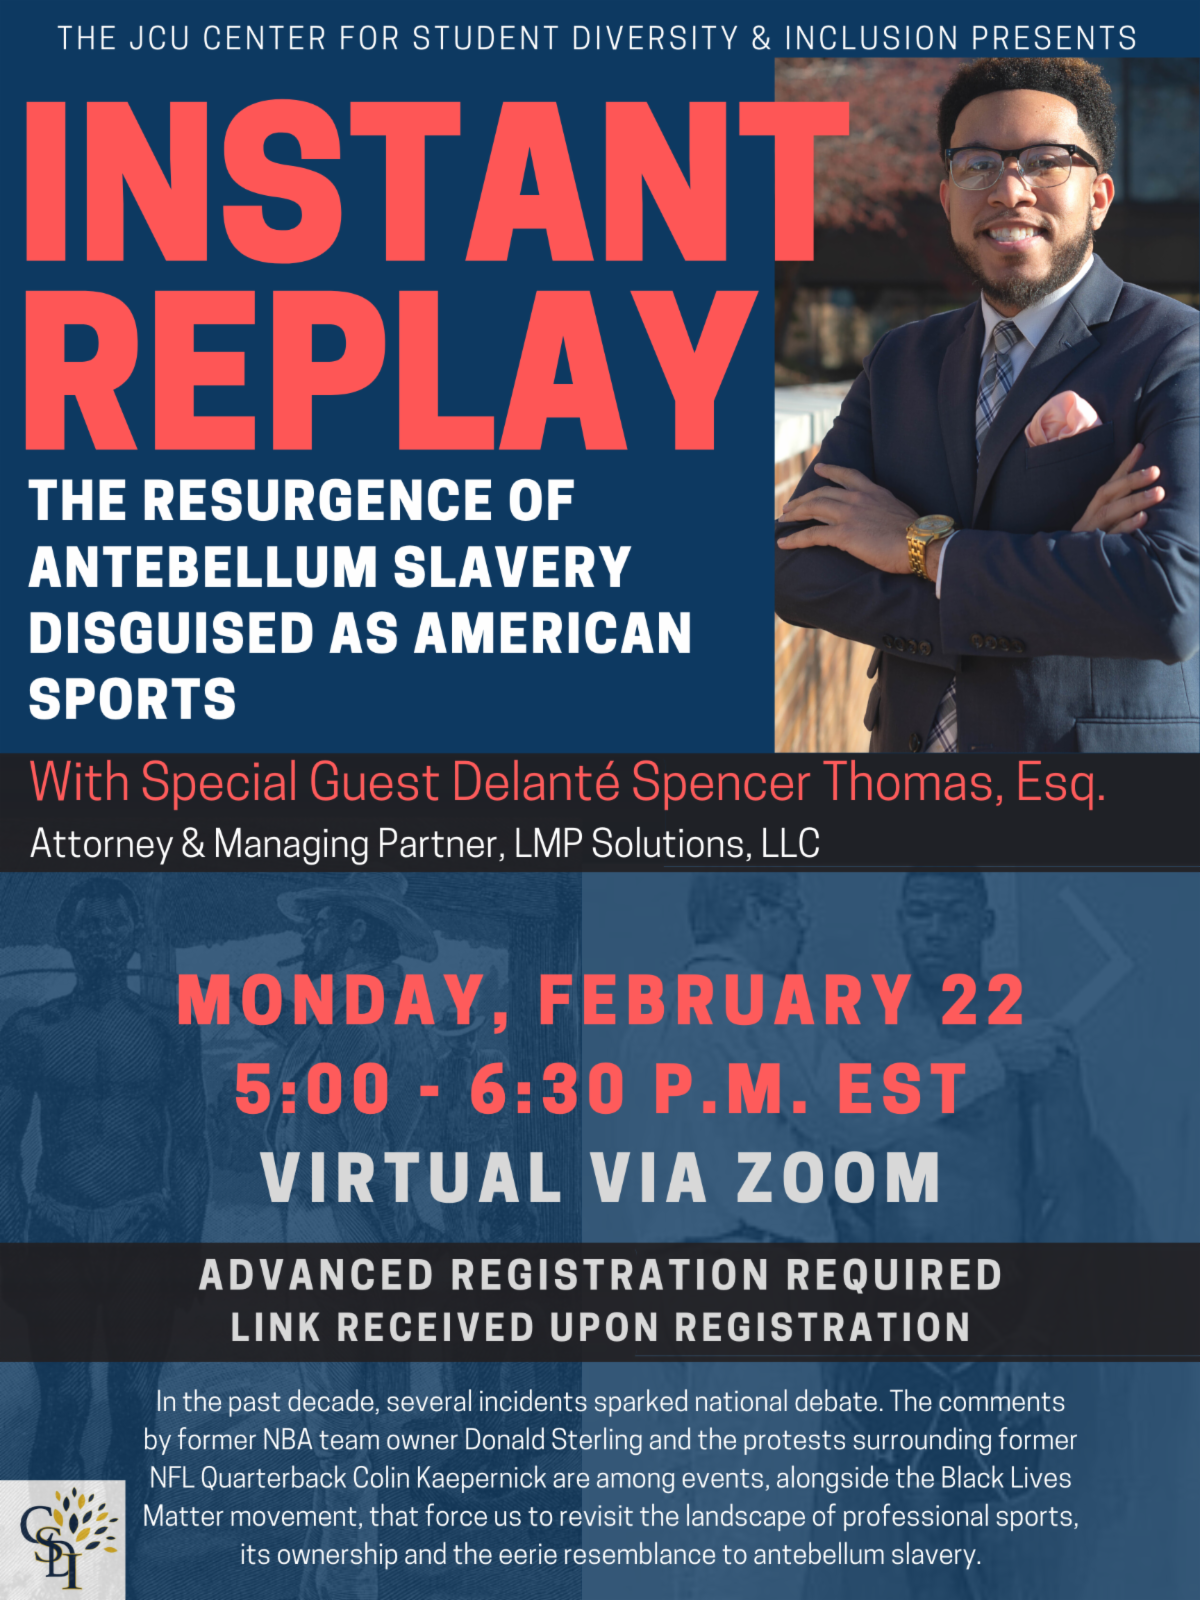 Flyer promoting Instant Replay event